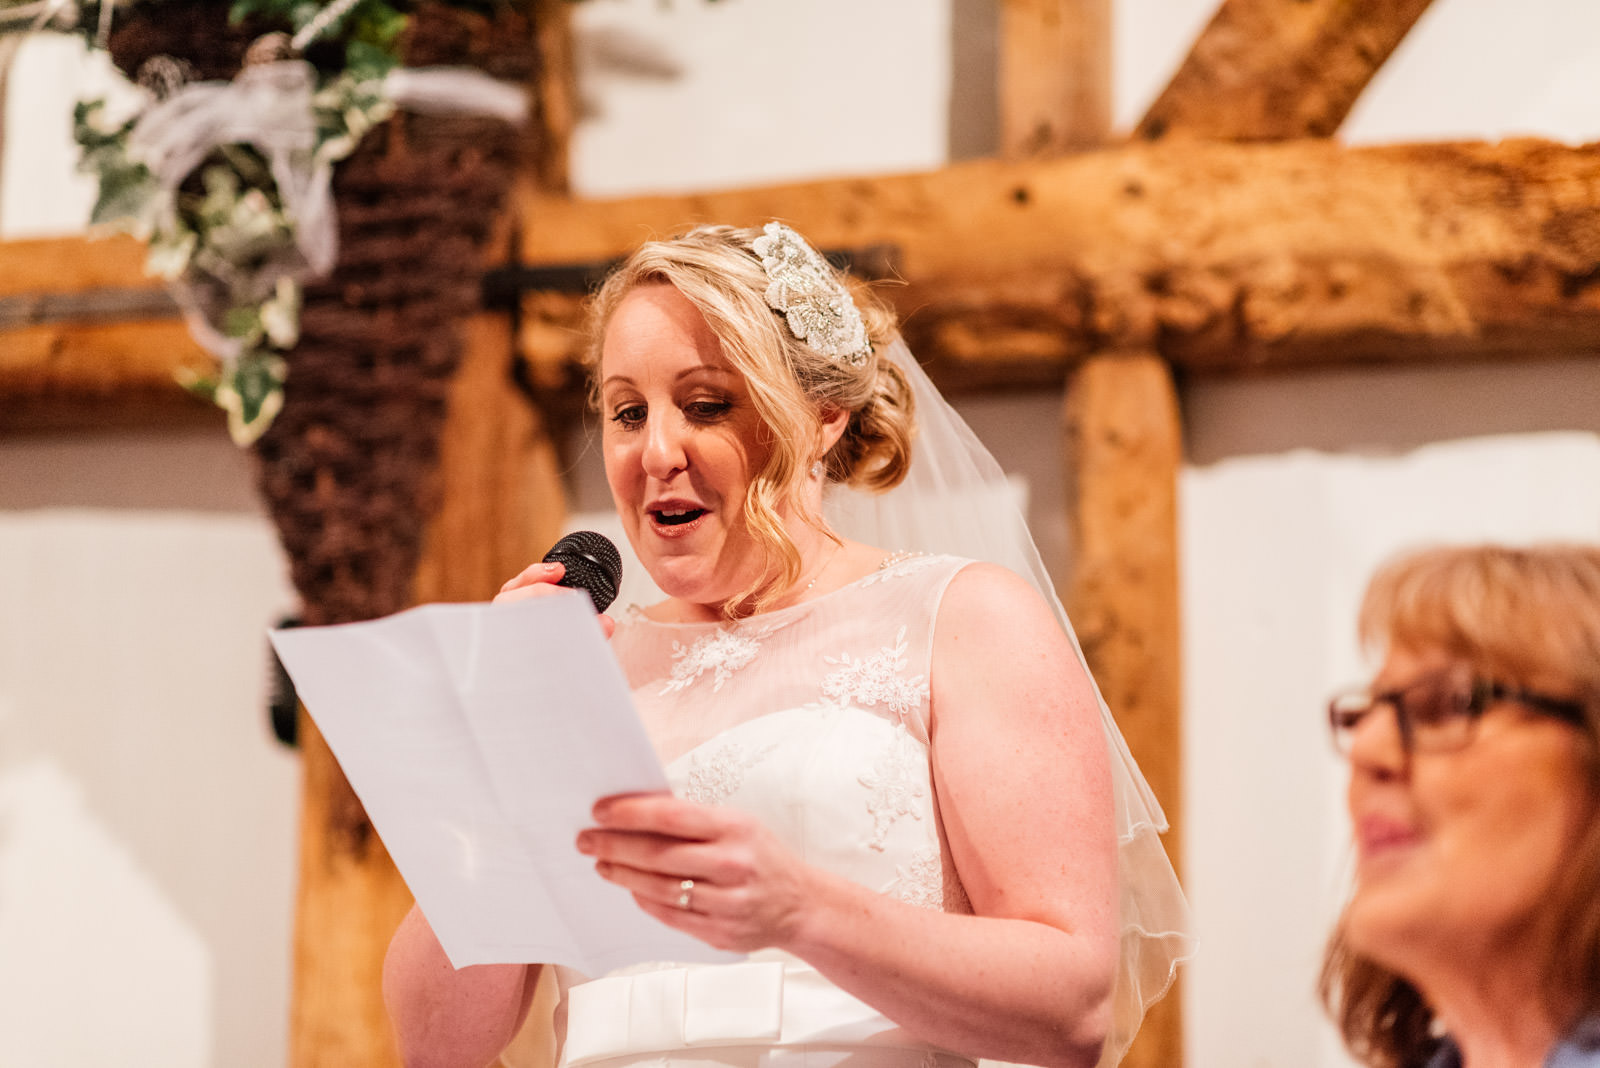 Bride speech on wedding day